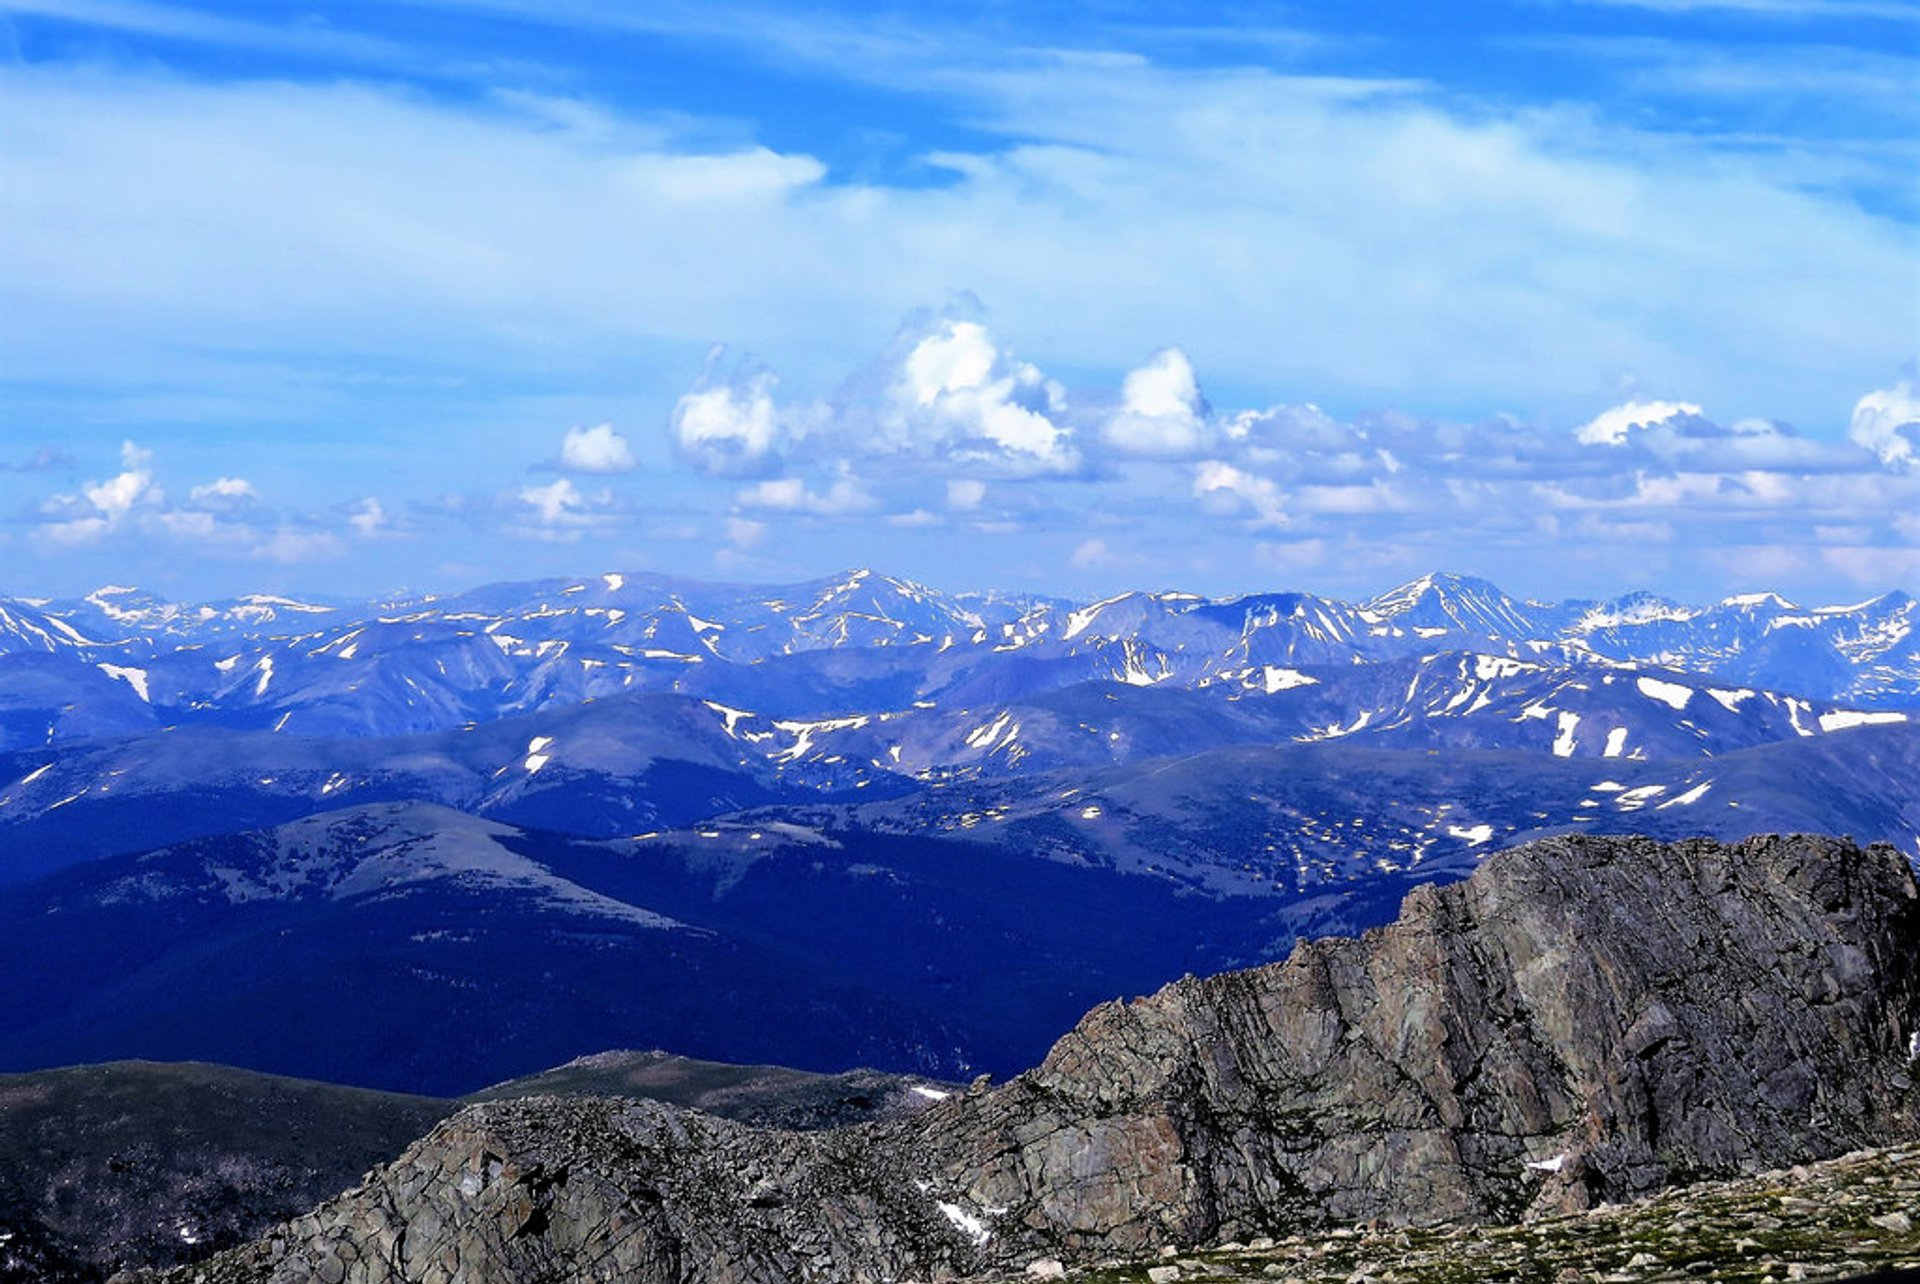 Mount Evans Scenic Byway in Colorado 2020 - Best Time